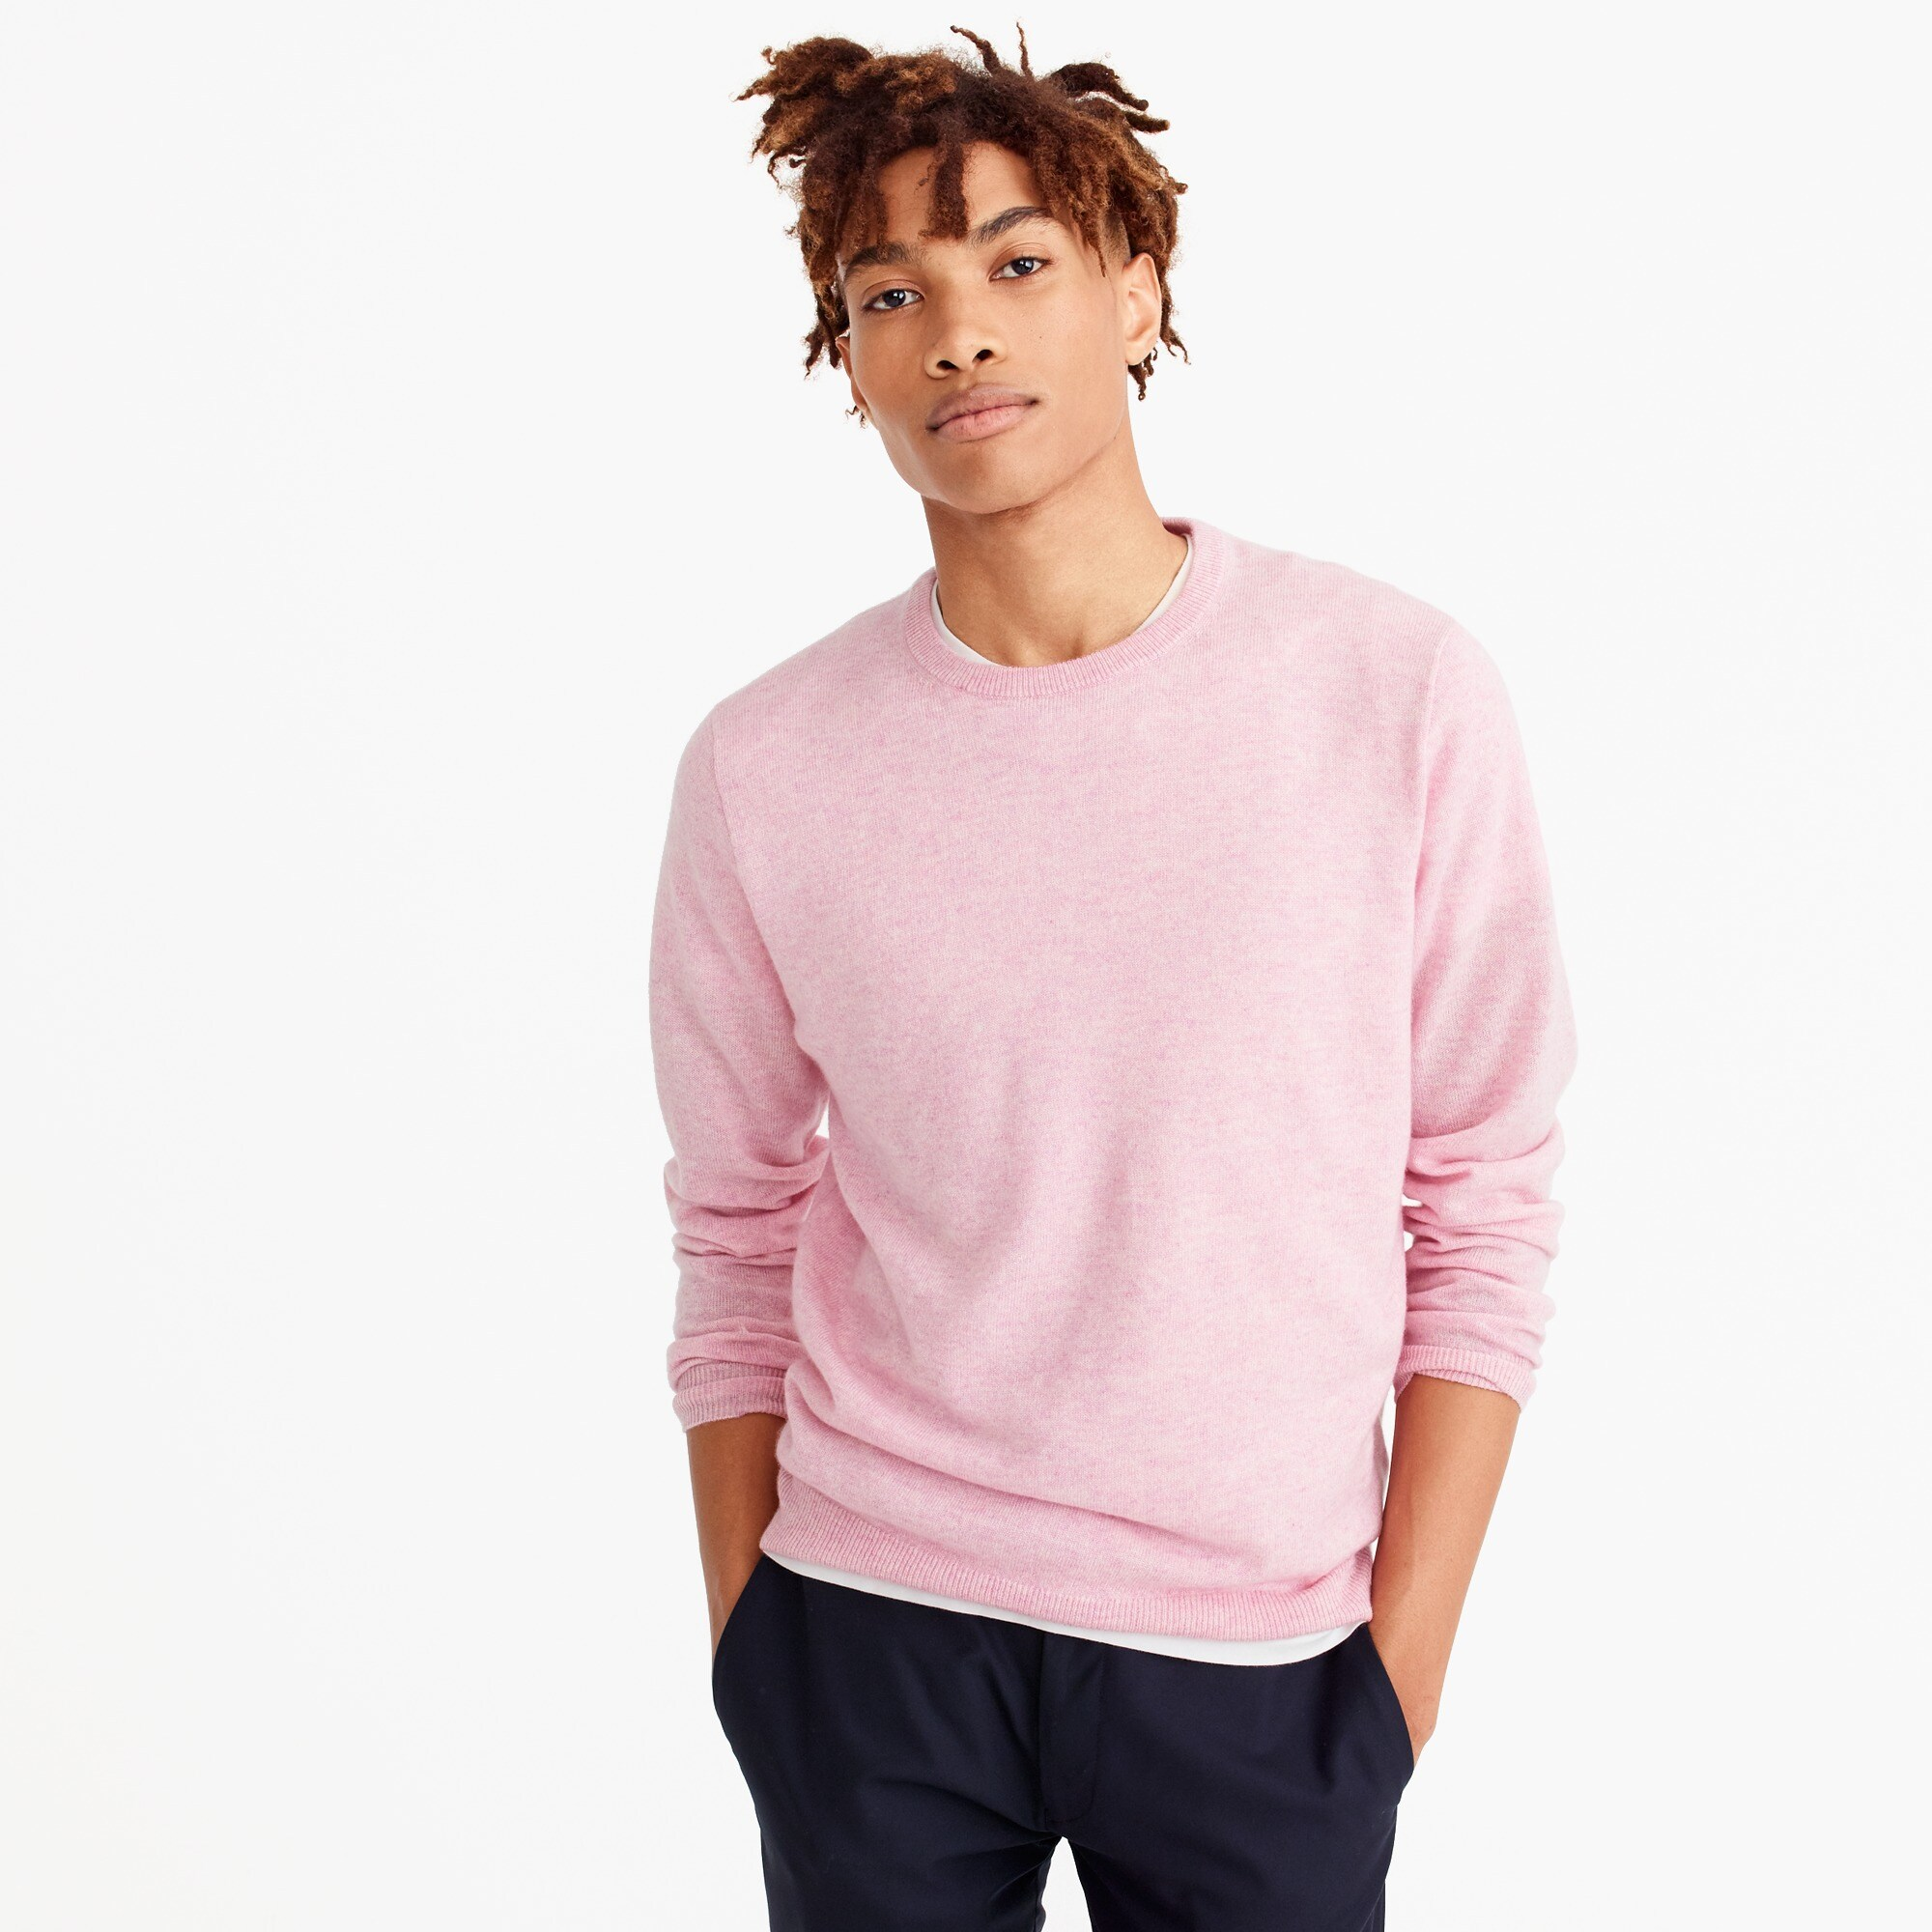 Everyday cashmere crewneck sweater men sweaters c